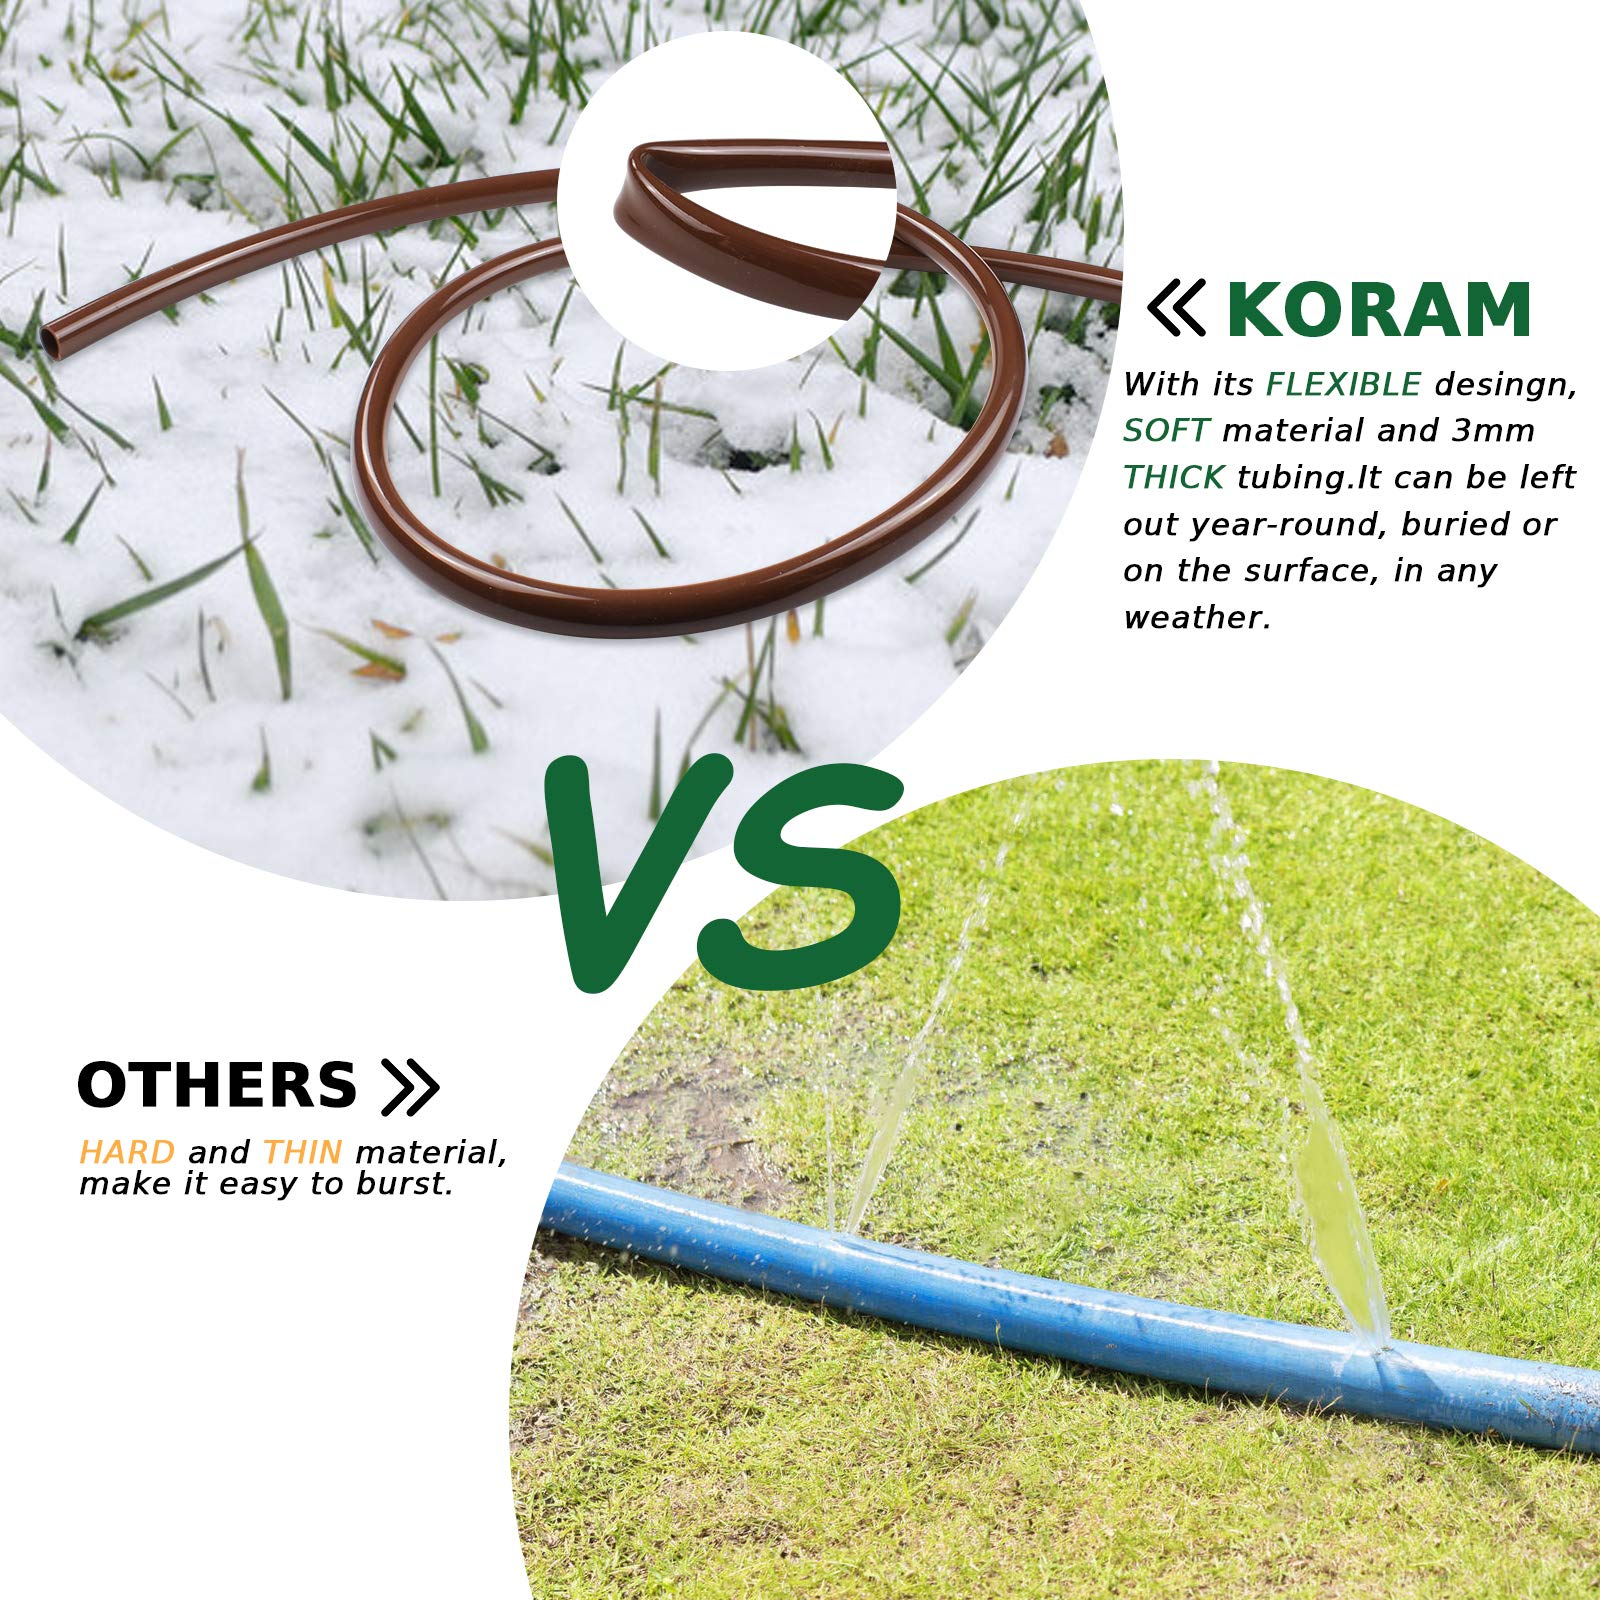 """KORAM OT-E 50 Feet Blank Distribution Tubing Hose Plant Watering Irrigation Drip Kit Accessories Include Nozzle Mister Irrigation Stake, 1/2"""" 1/4"""" Tubing and Fittings"""